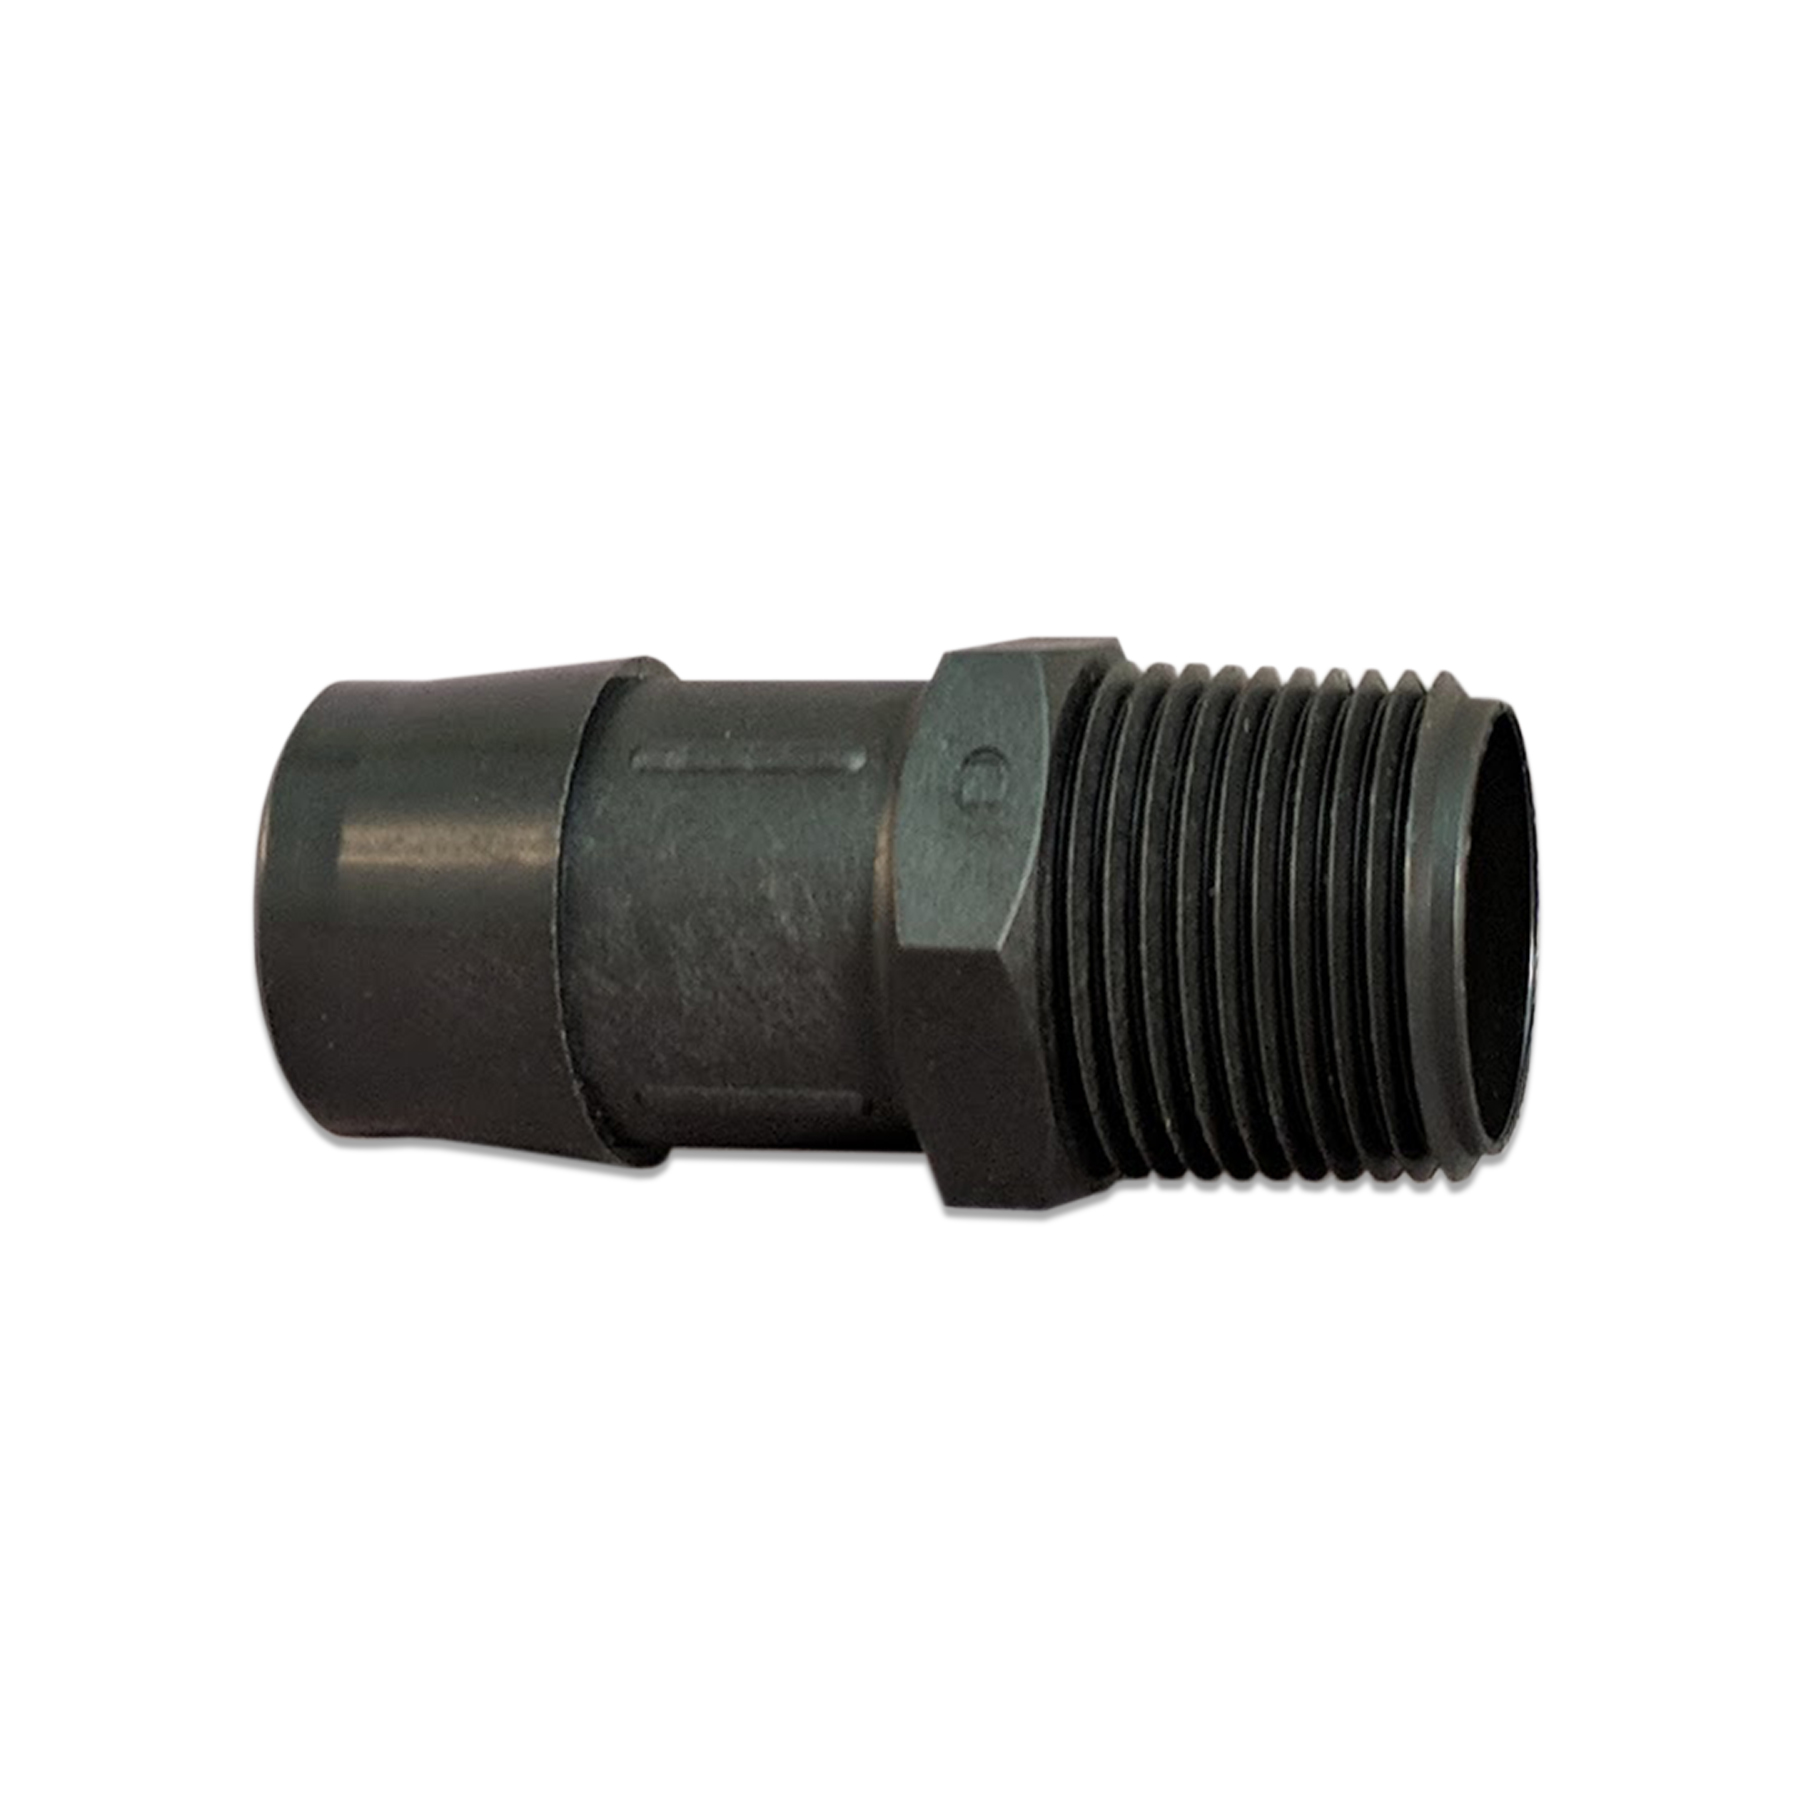 Glass Filled Black Nylon Barb Fitting, 3/4 in. NPT x 1 in.